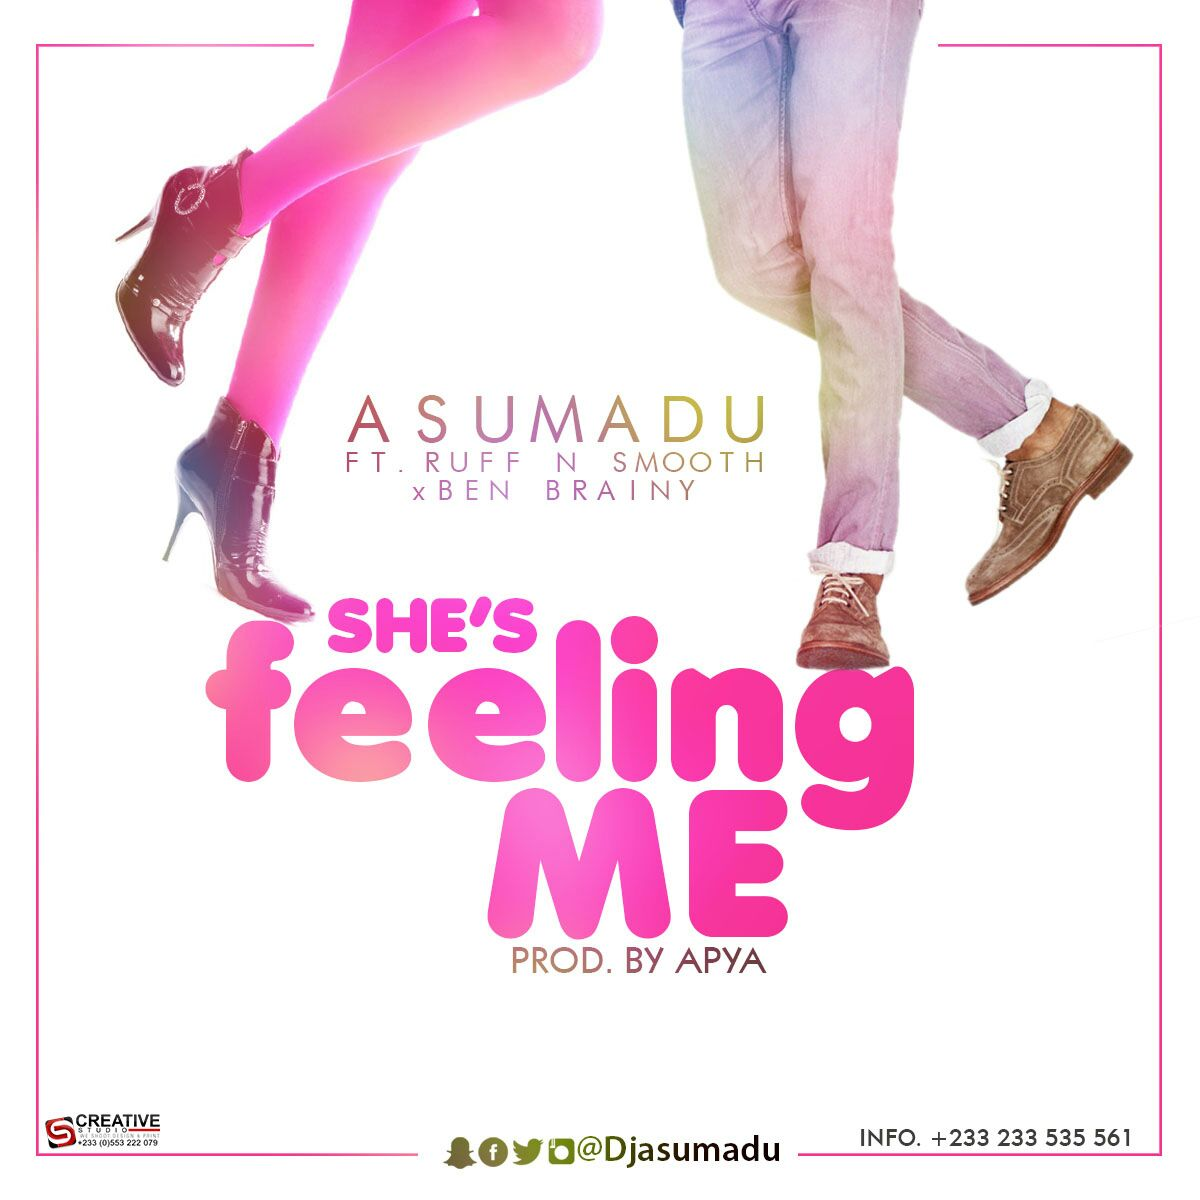 Asumadu – She's Feeling Me ft Ruff N Smooth x Ben Brainy (Prod by Apya)